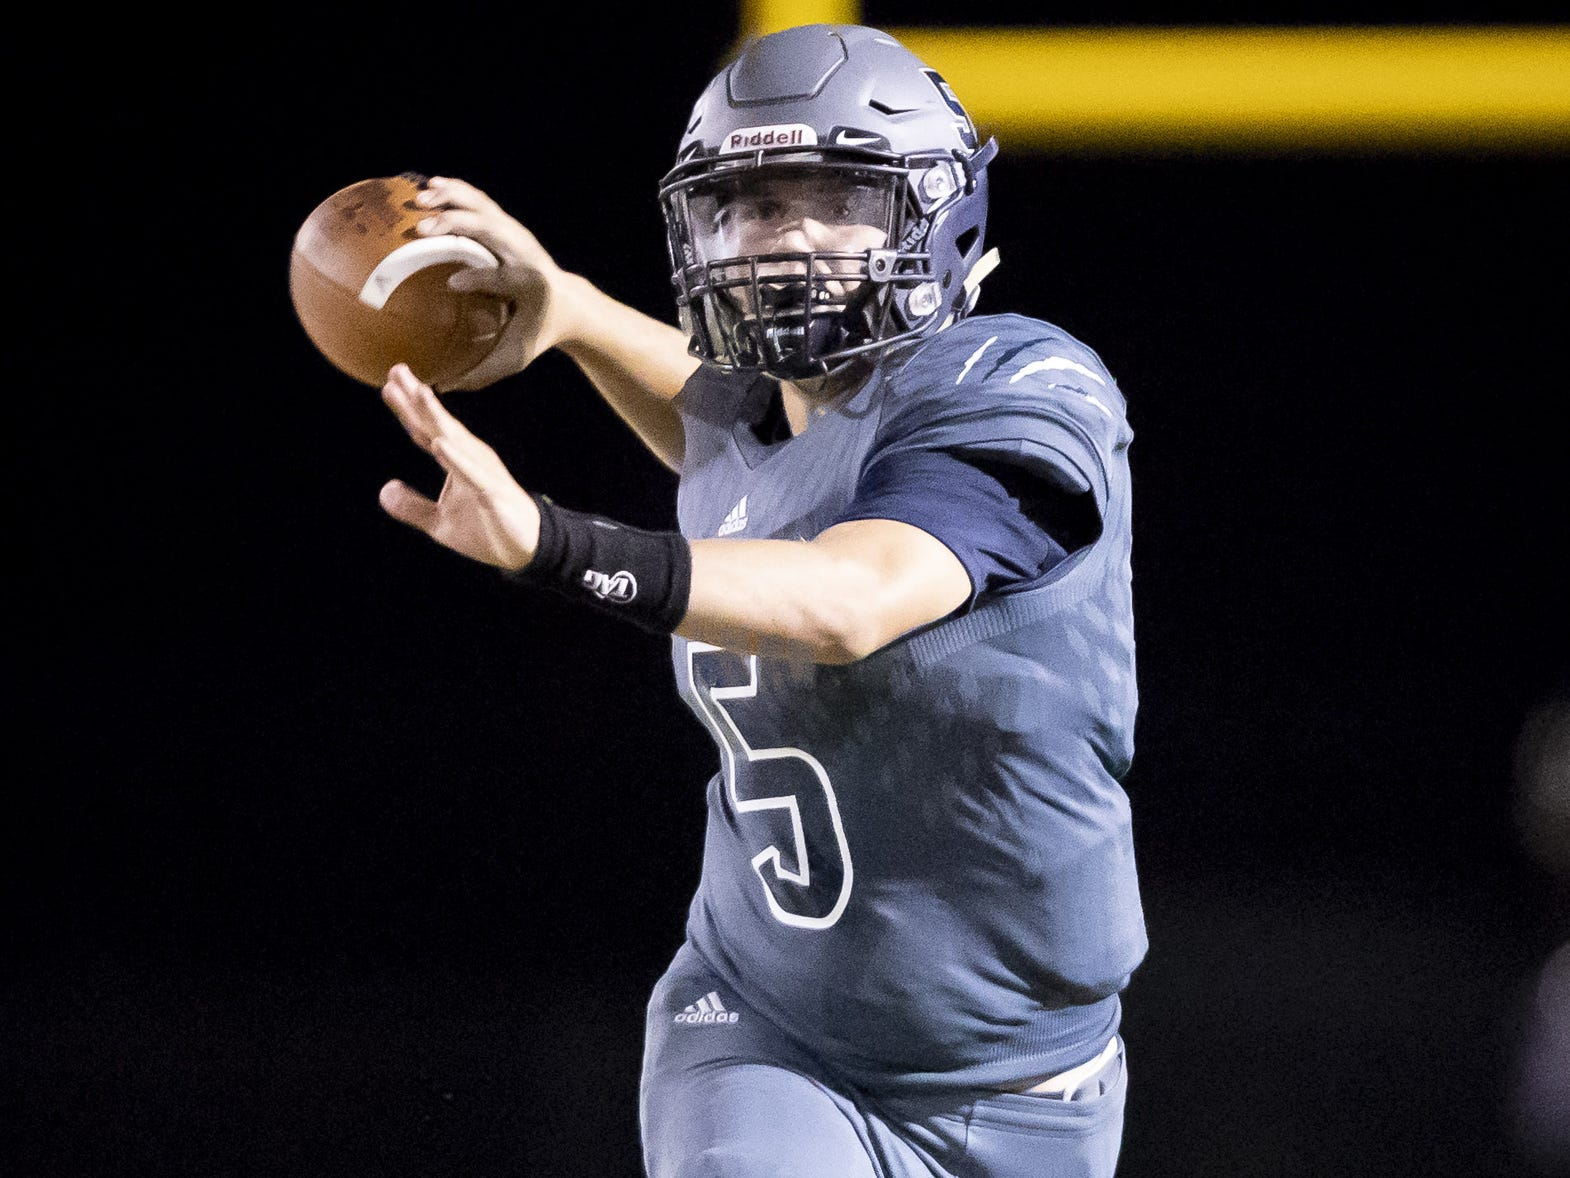 Junior quarterback Josh Ormond (5) of the Willow Canyon Wildcats throws a pass against the Shadow Ridge Stallions at Willow Canyon High School on Friday, September 7, 2018 in Surprise, Arizona. #azhsfb